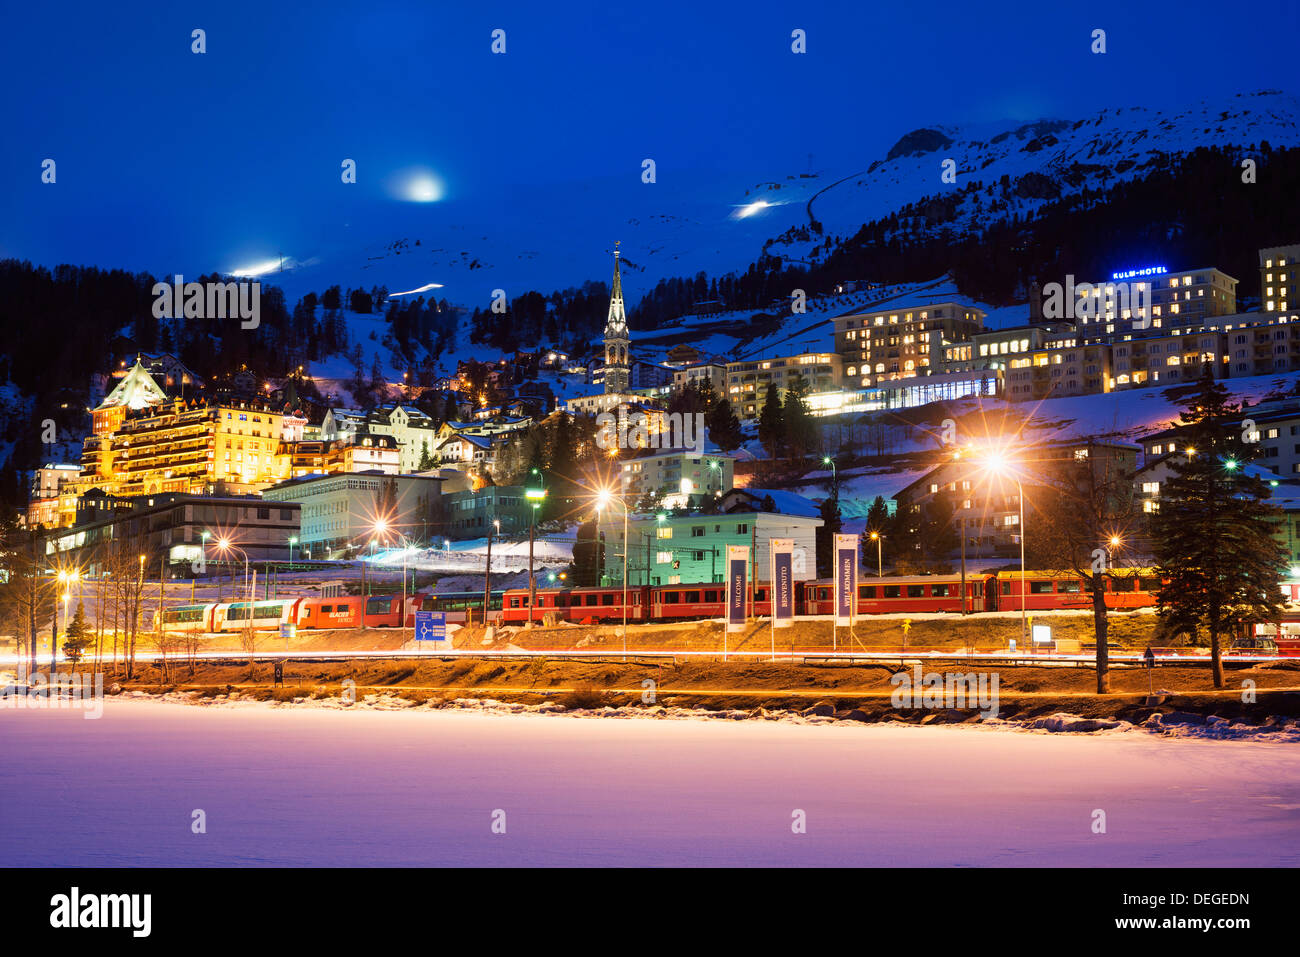 Saint-moritz, Grisons, Swiss Alps, Switzerland, Europe Photo Stock